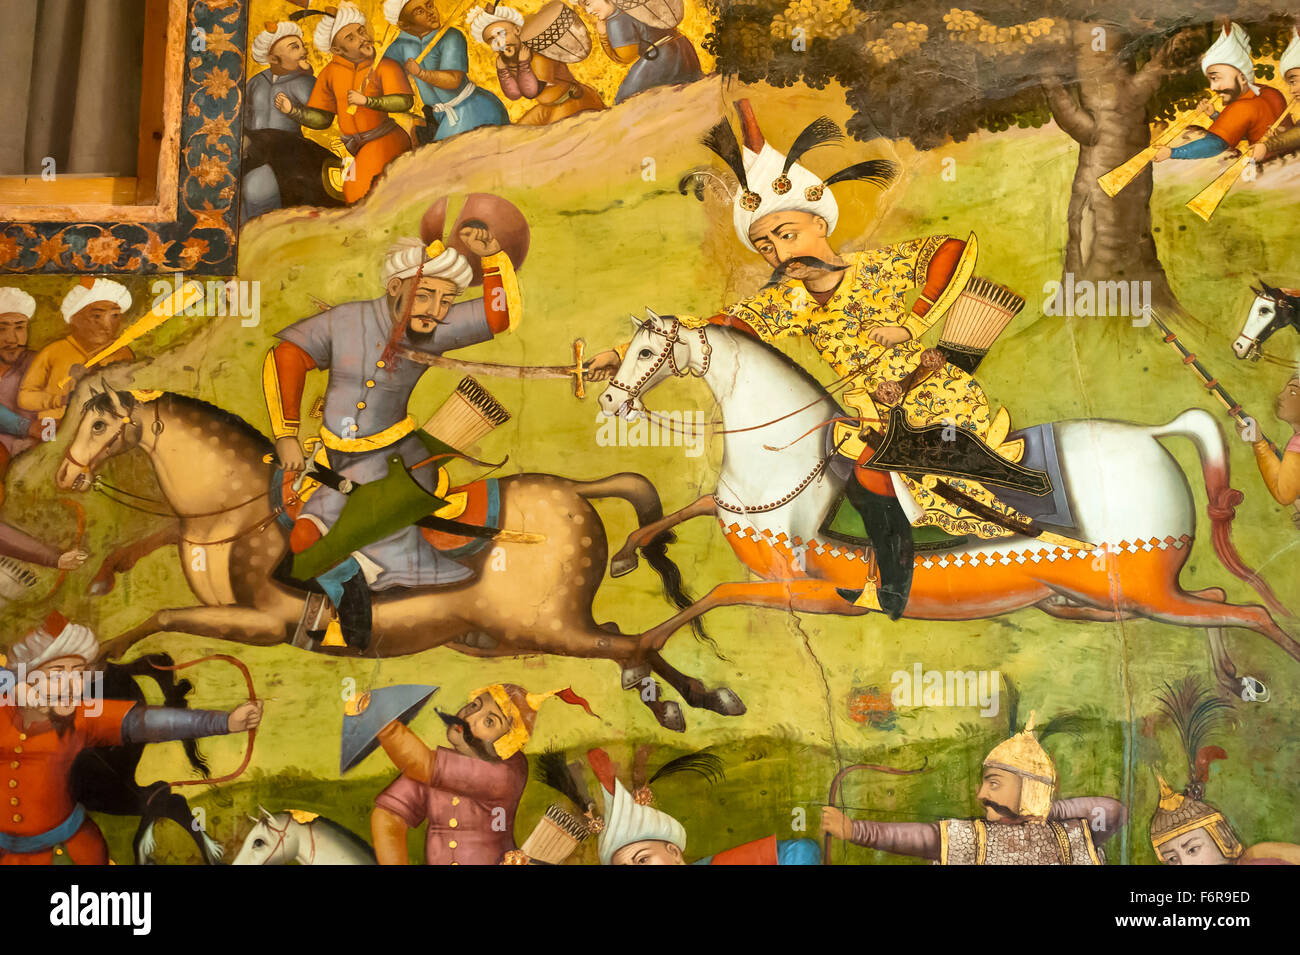 Fresco, Shah Ismail on a white horse at the battle of Taher Abad, 1510, against the Uzbeks in Merv, Chehel Sotoun Stock Photo